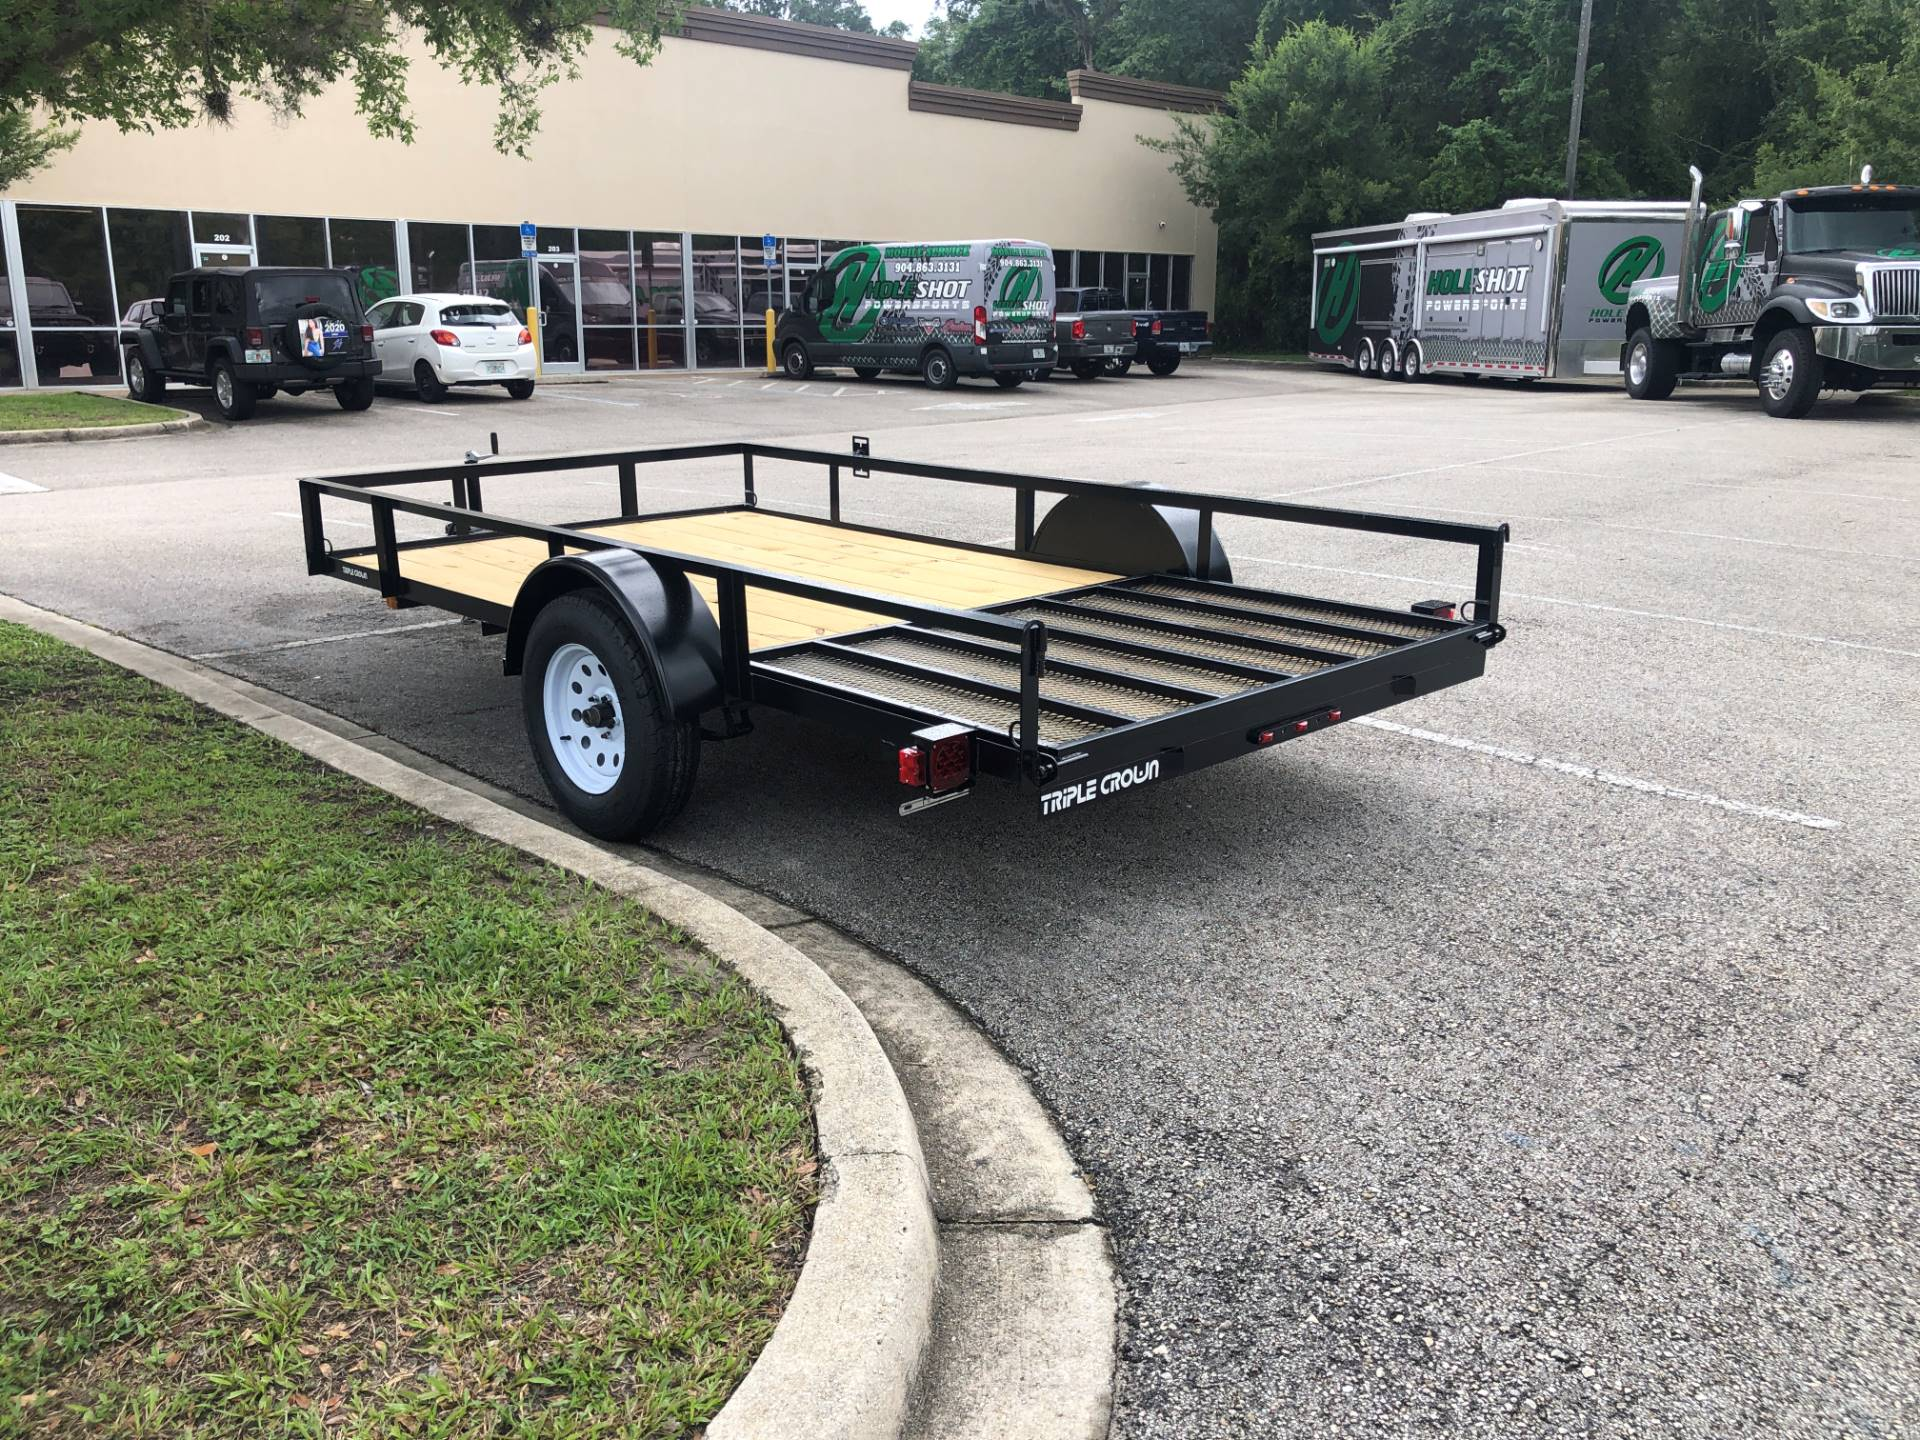 2021 TRIPLE CROWN TRAILERS 6X12 ATV TRAILER in Fleming Island, Florida - Photo 3